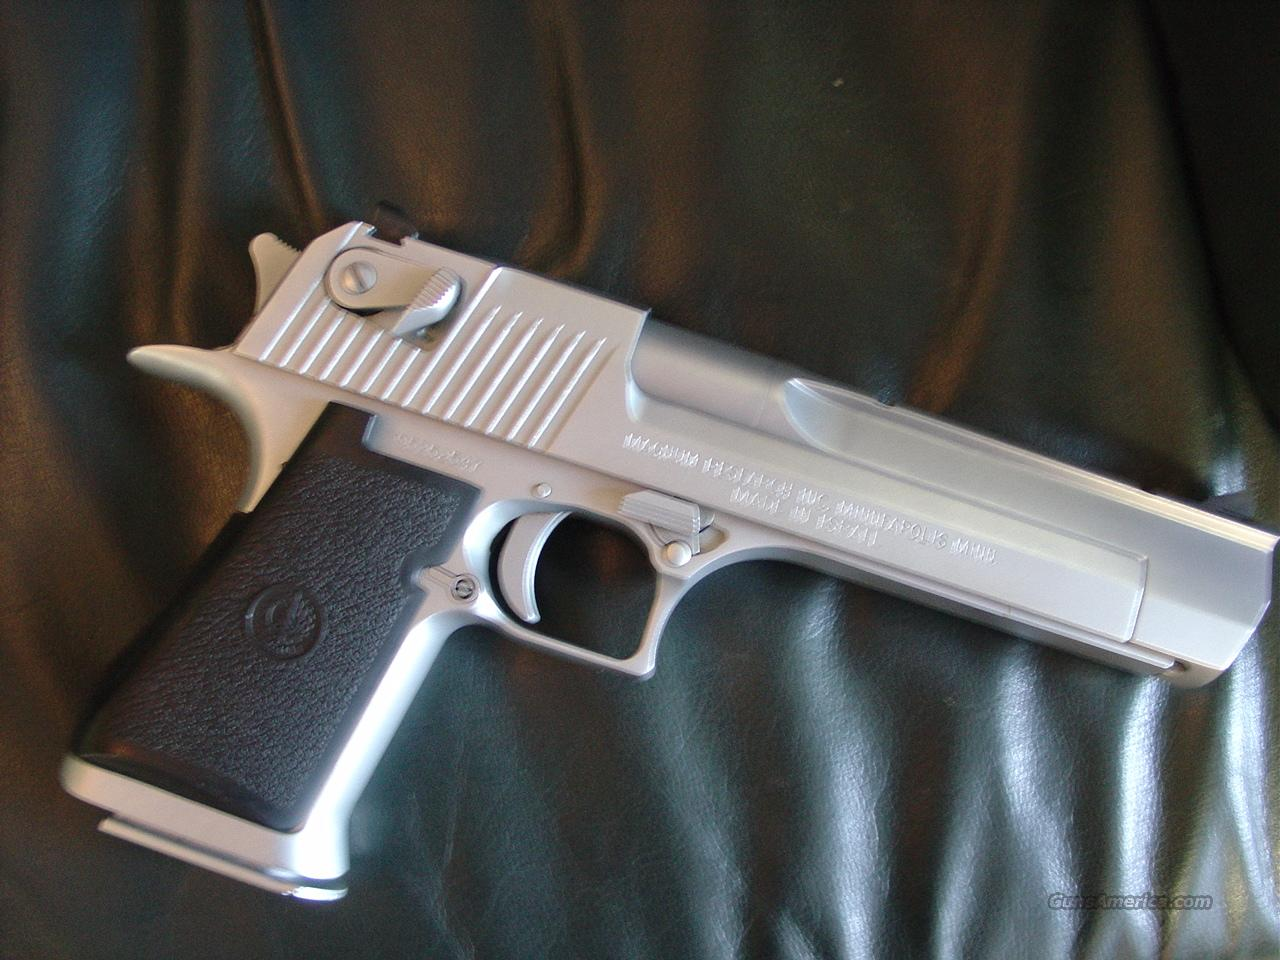 "Magnum Research,IWI Desert Eagle 50 caliber Hand Cannon,6"",Matt stainless finish,made in Israel,no box or papers  Guns > Pistols > Desert Eagle/IMI Pistols > Desert Eagle"